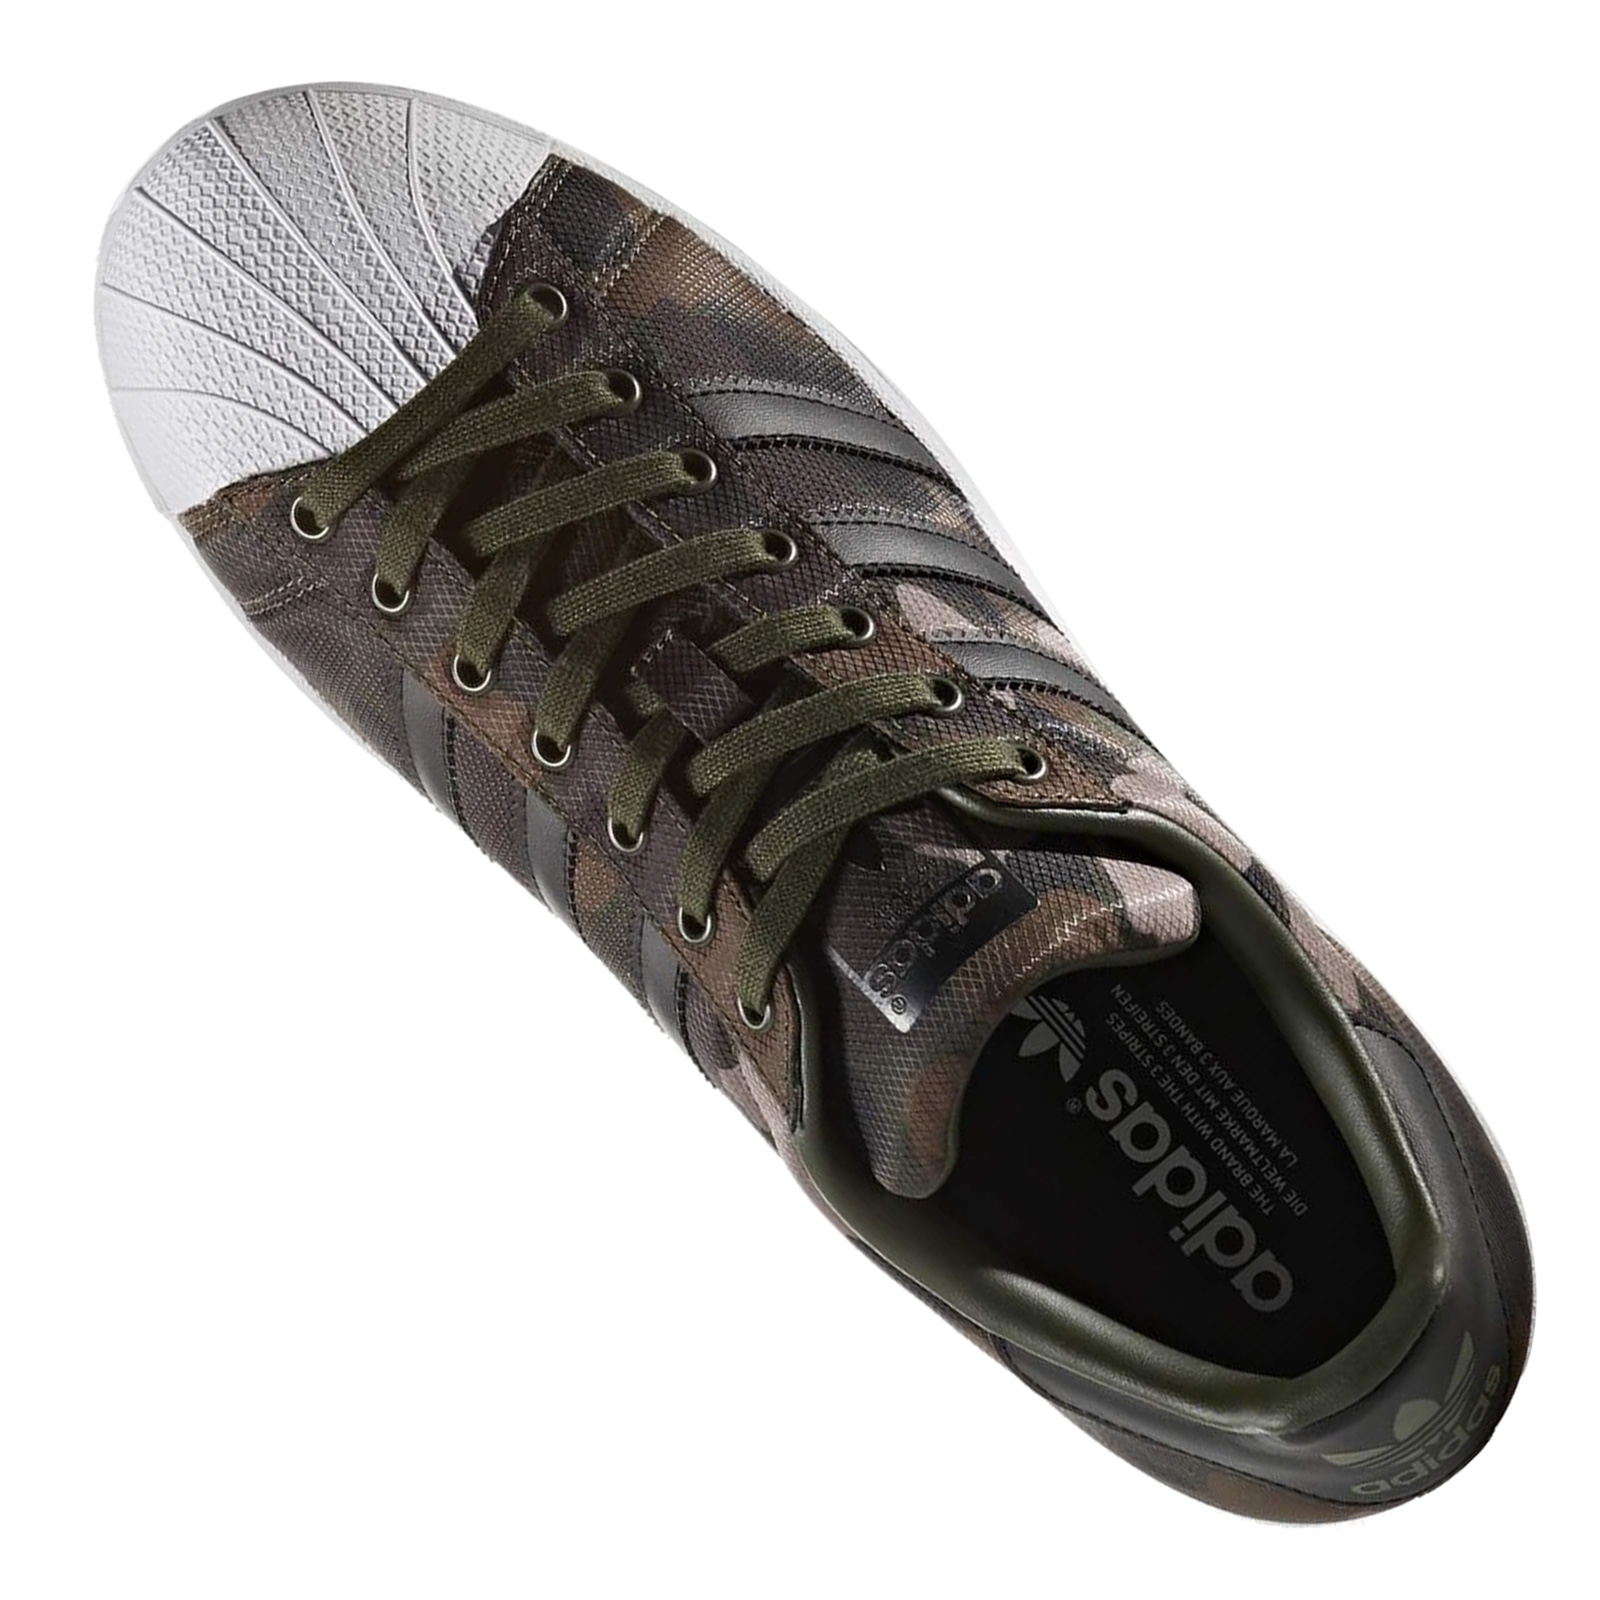 Details about Adidas Originals Superstar Camo Camouflage Trainers BZ0188 Sneakers Shoes